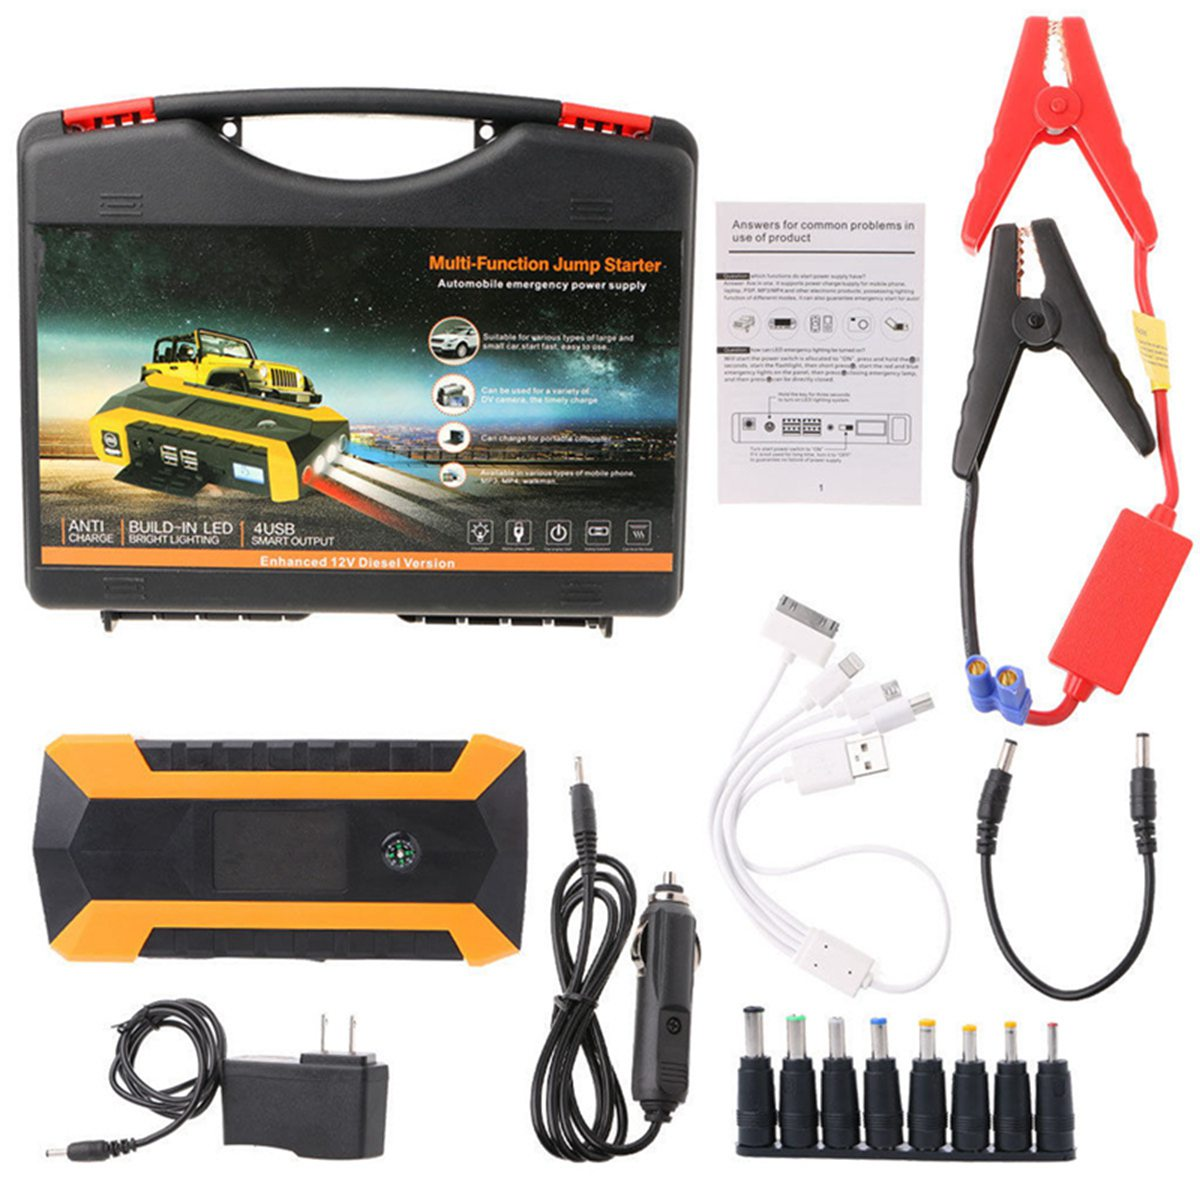 89800mAh 12V 4USB Car Jump Starter Car Battery Charger Starting Booster Power Bank Tool Kit For Auto Starting Device new 12v 89800mah portable 4usb car jump starter power bank tool kit booster charger battery automobile emergency led light